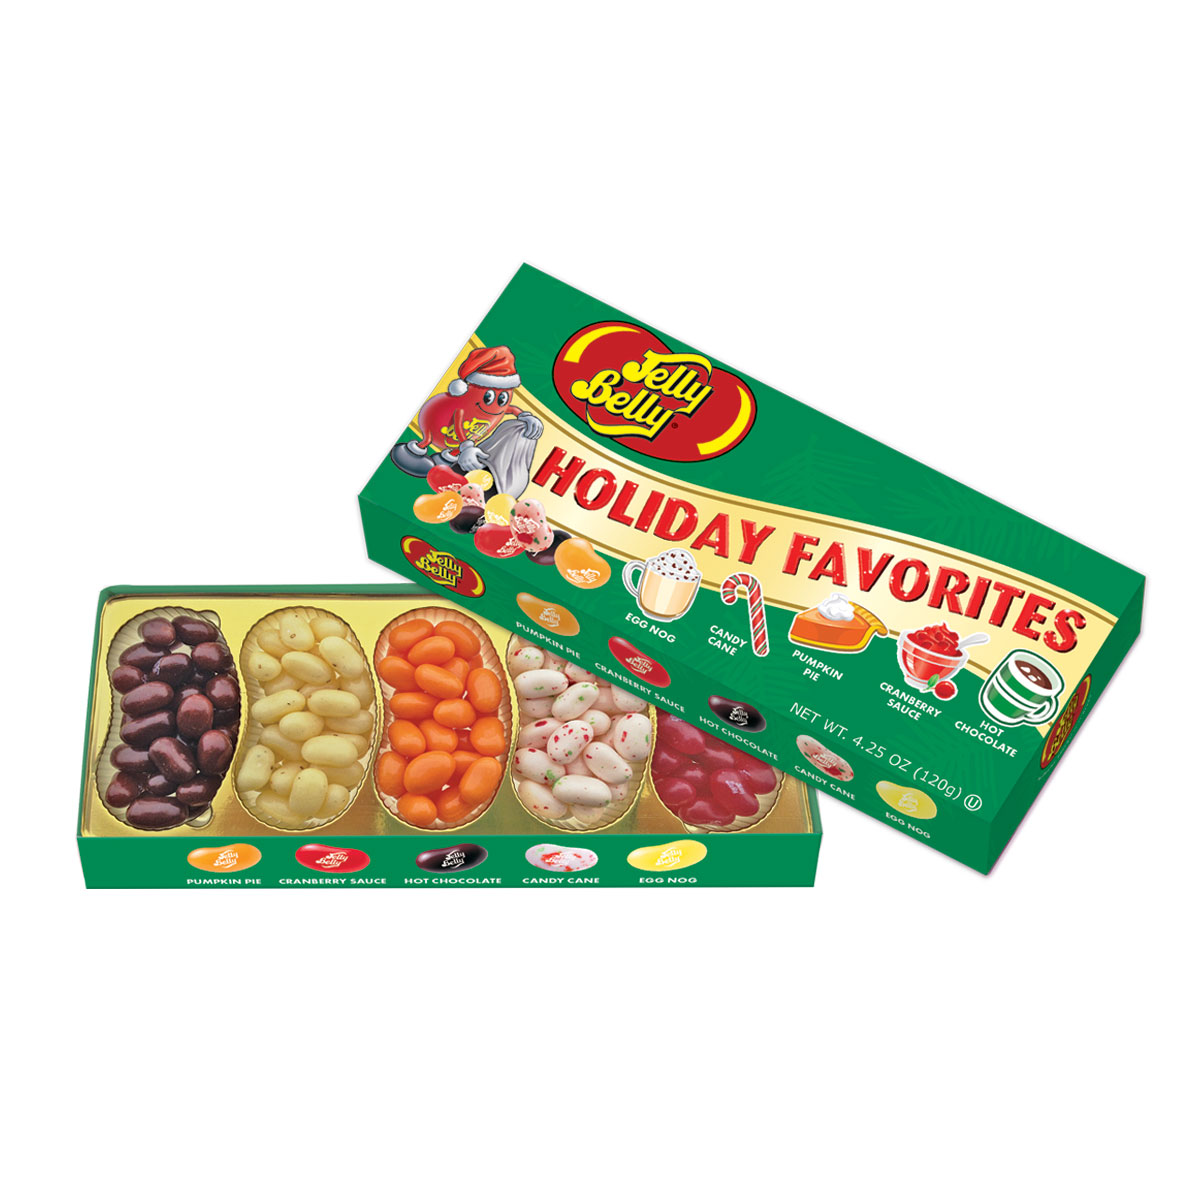 Holiday Favorites Jelly Bean 4.25 oz Gift Box